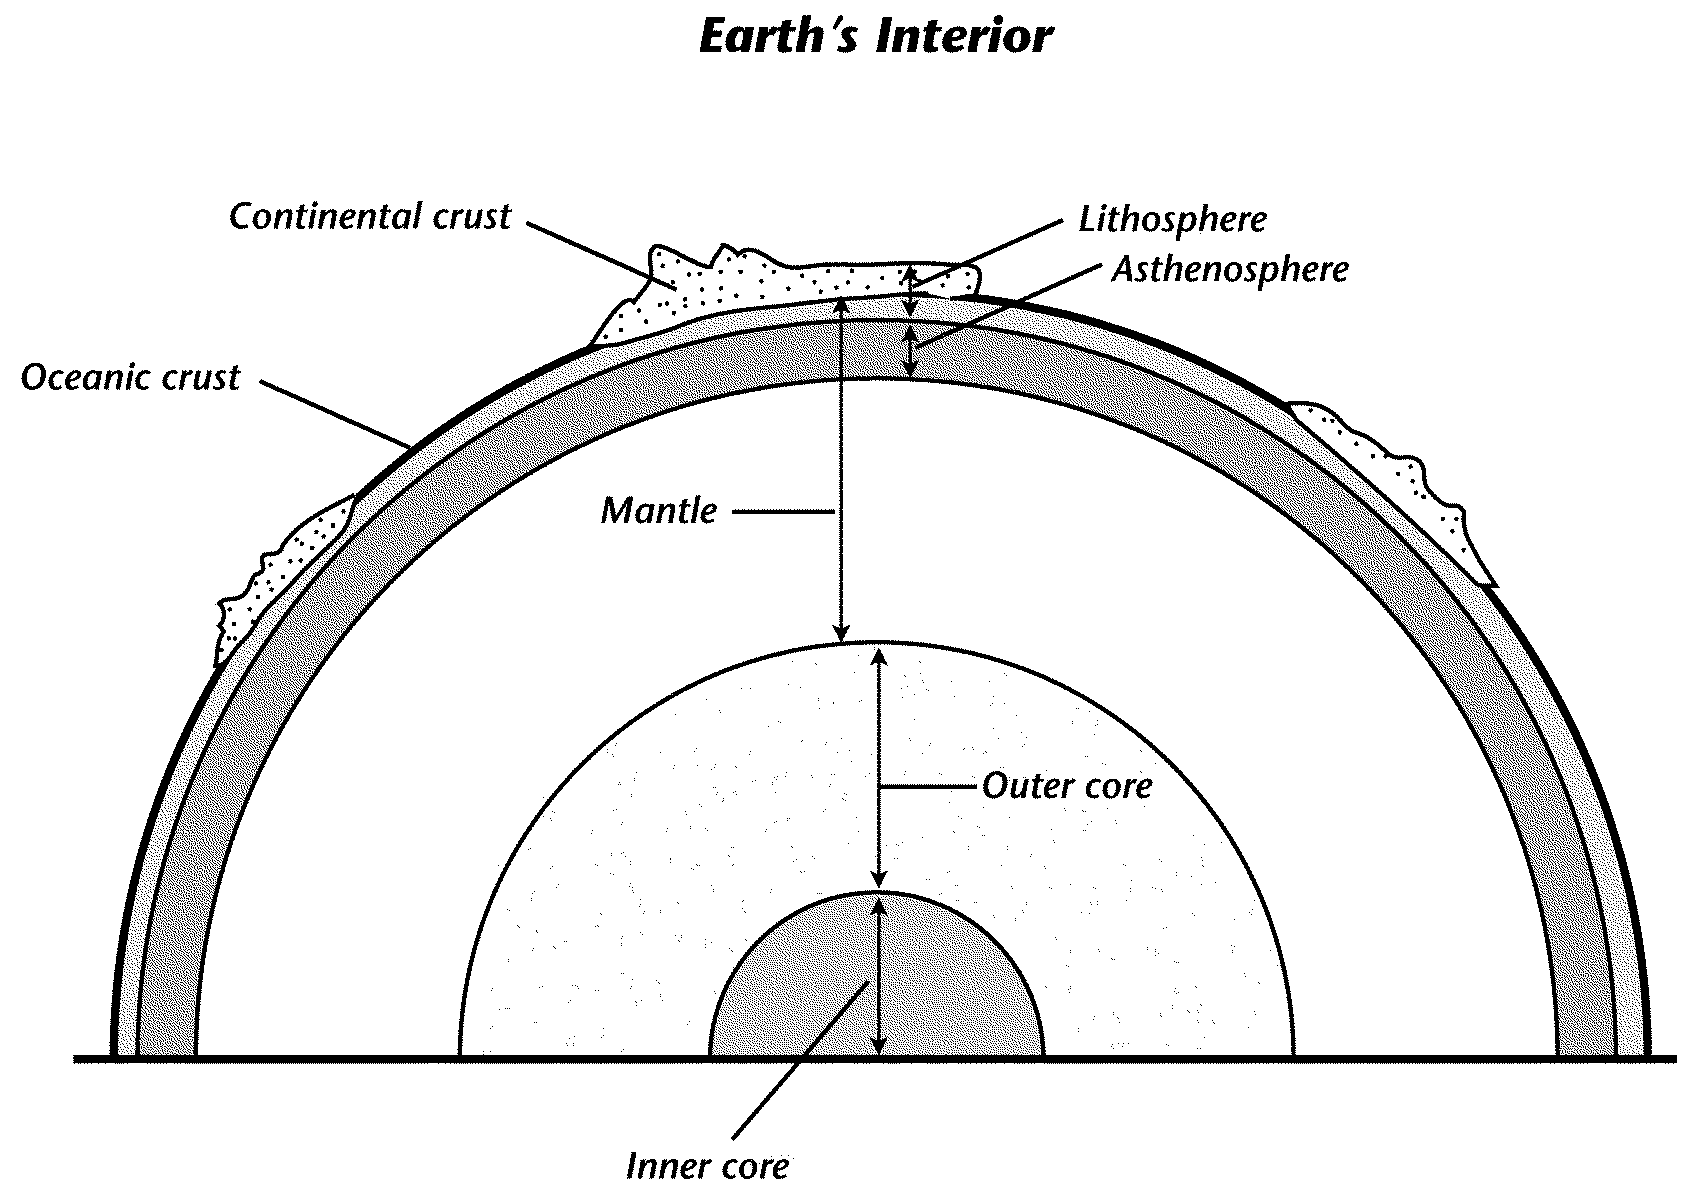 hight resolution of based on the diagram describe one of the major differences between oceanic crust and continental crust